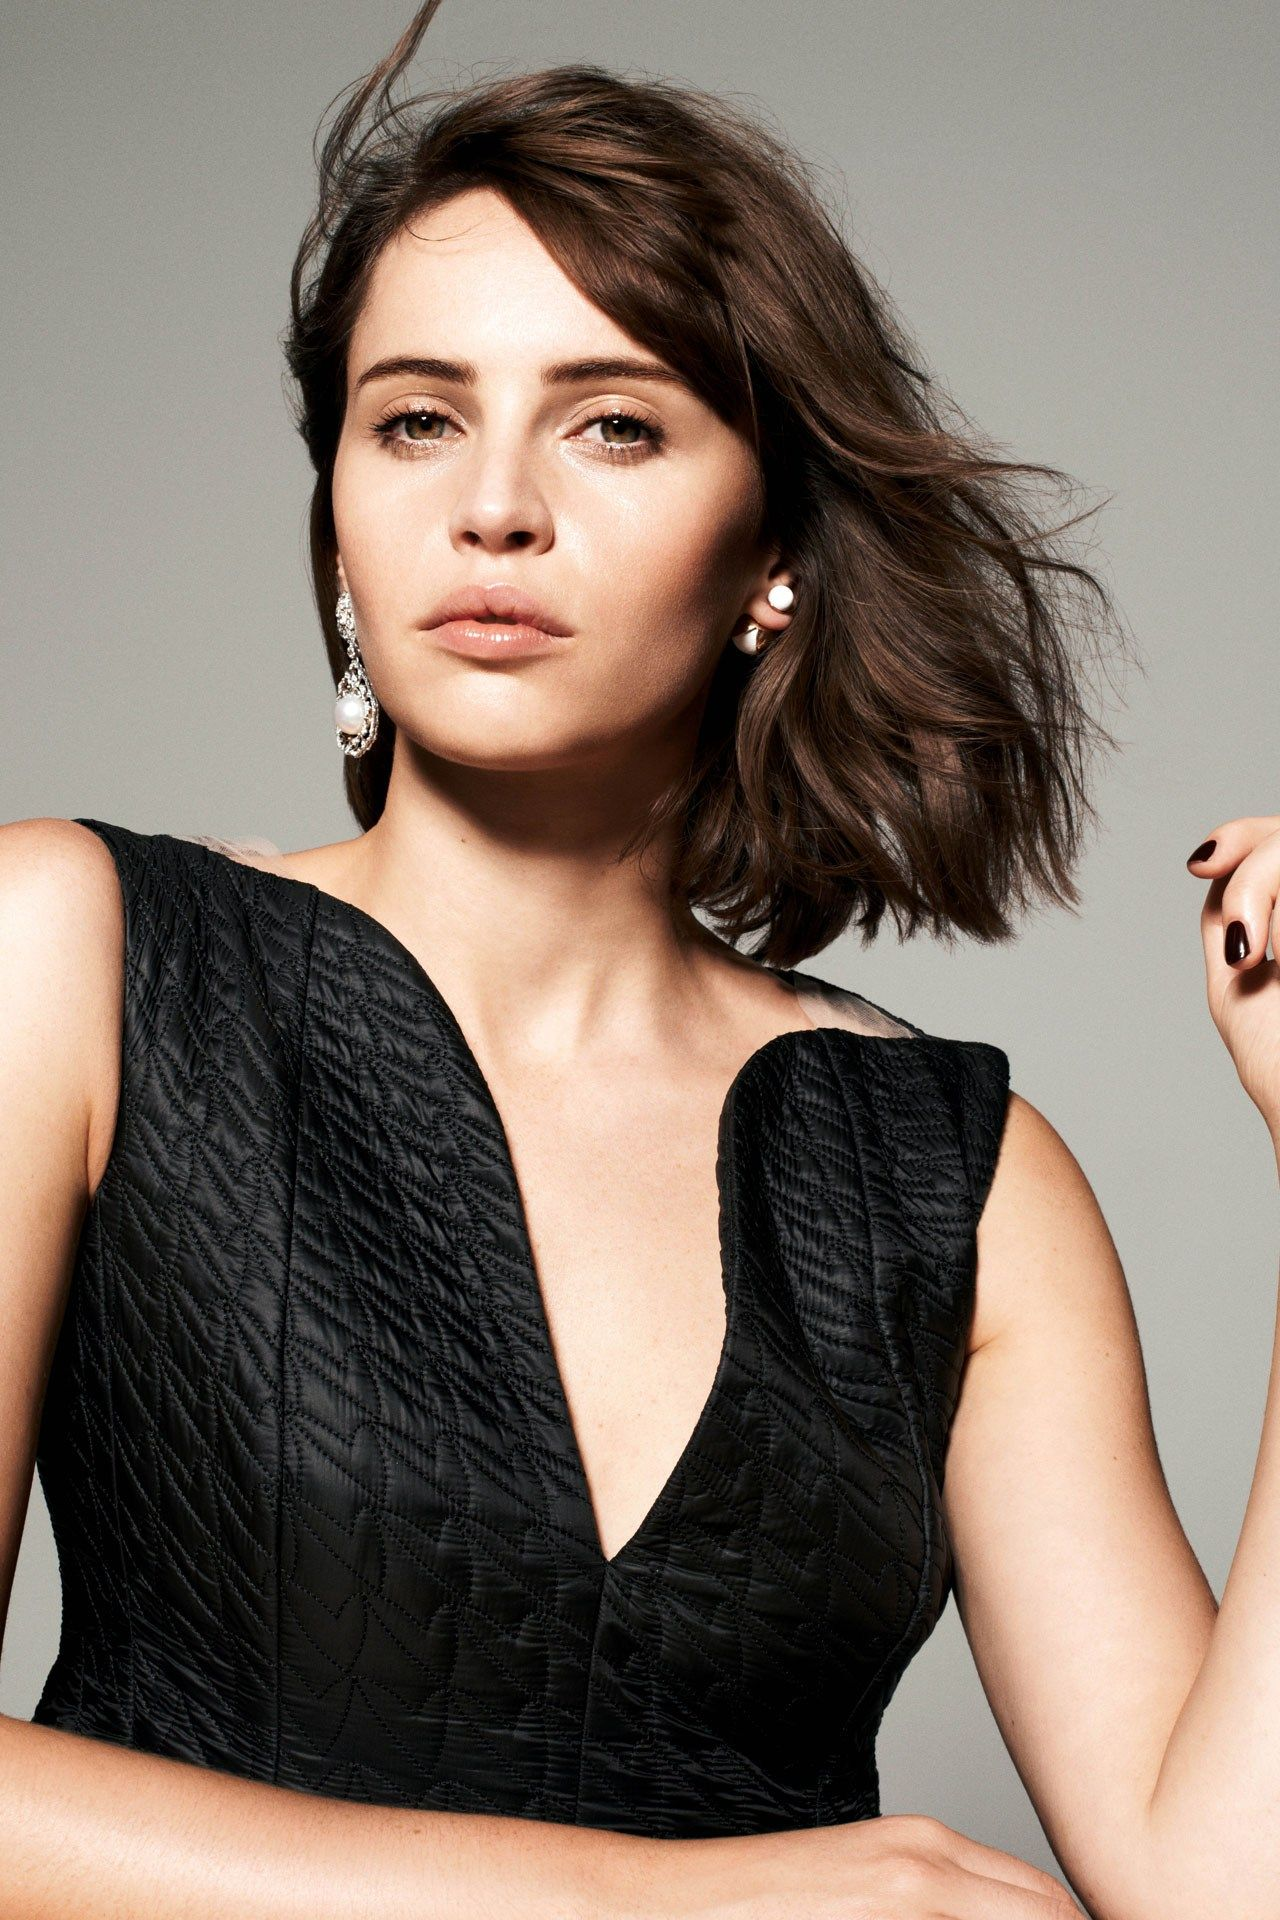 Felicity Jones - Photoshoot for Tatler Magazine - January 2015